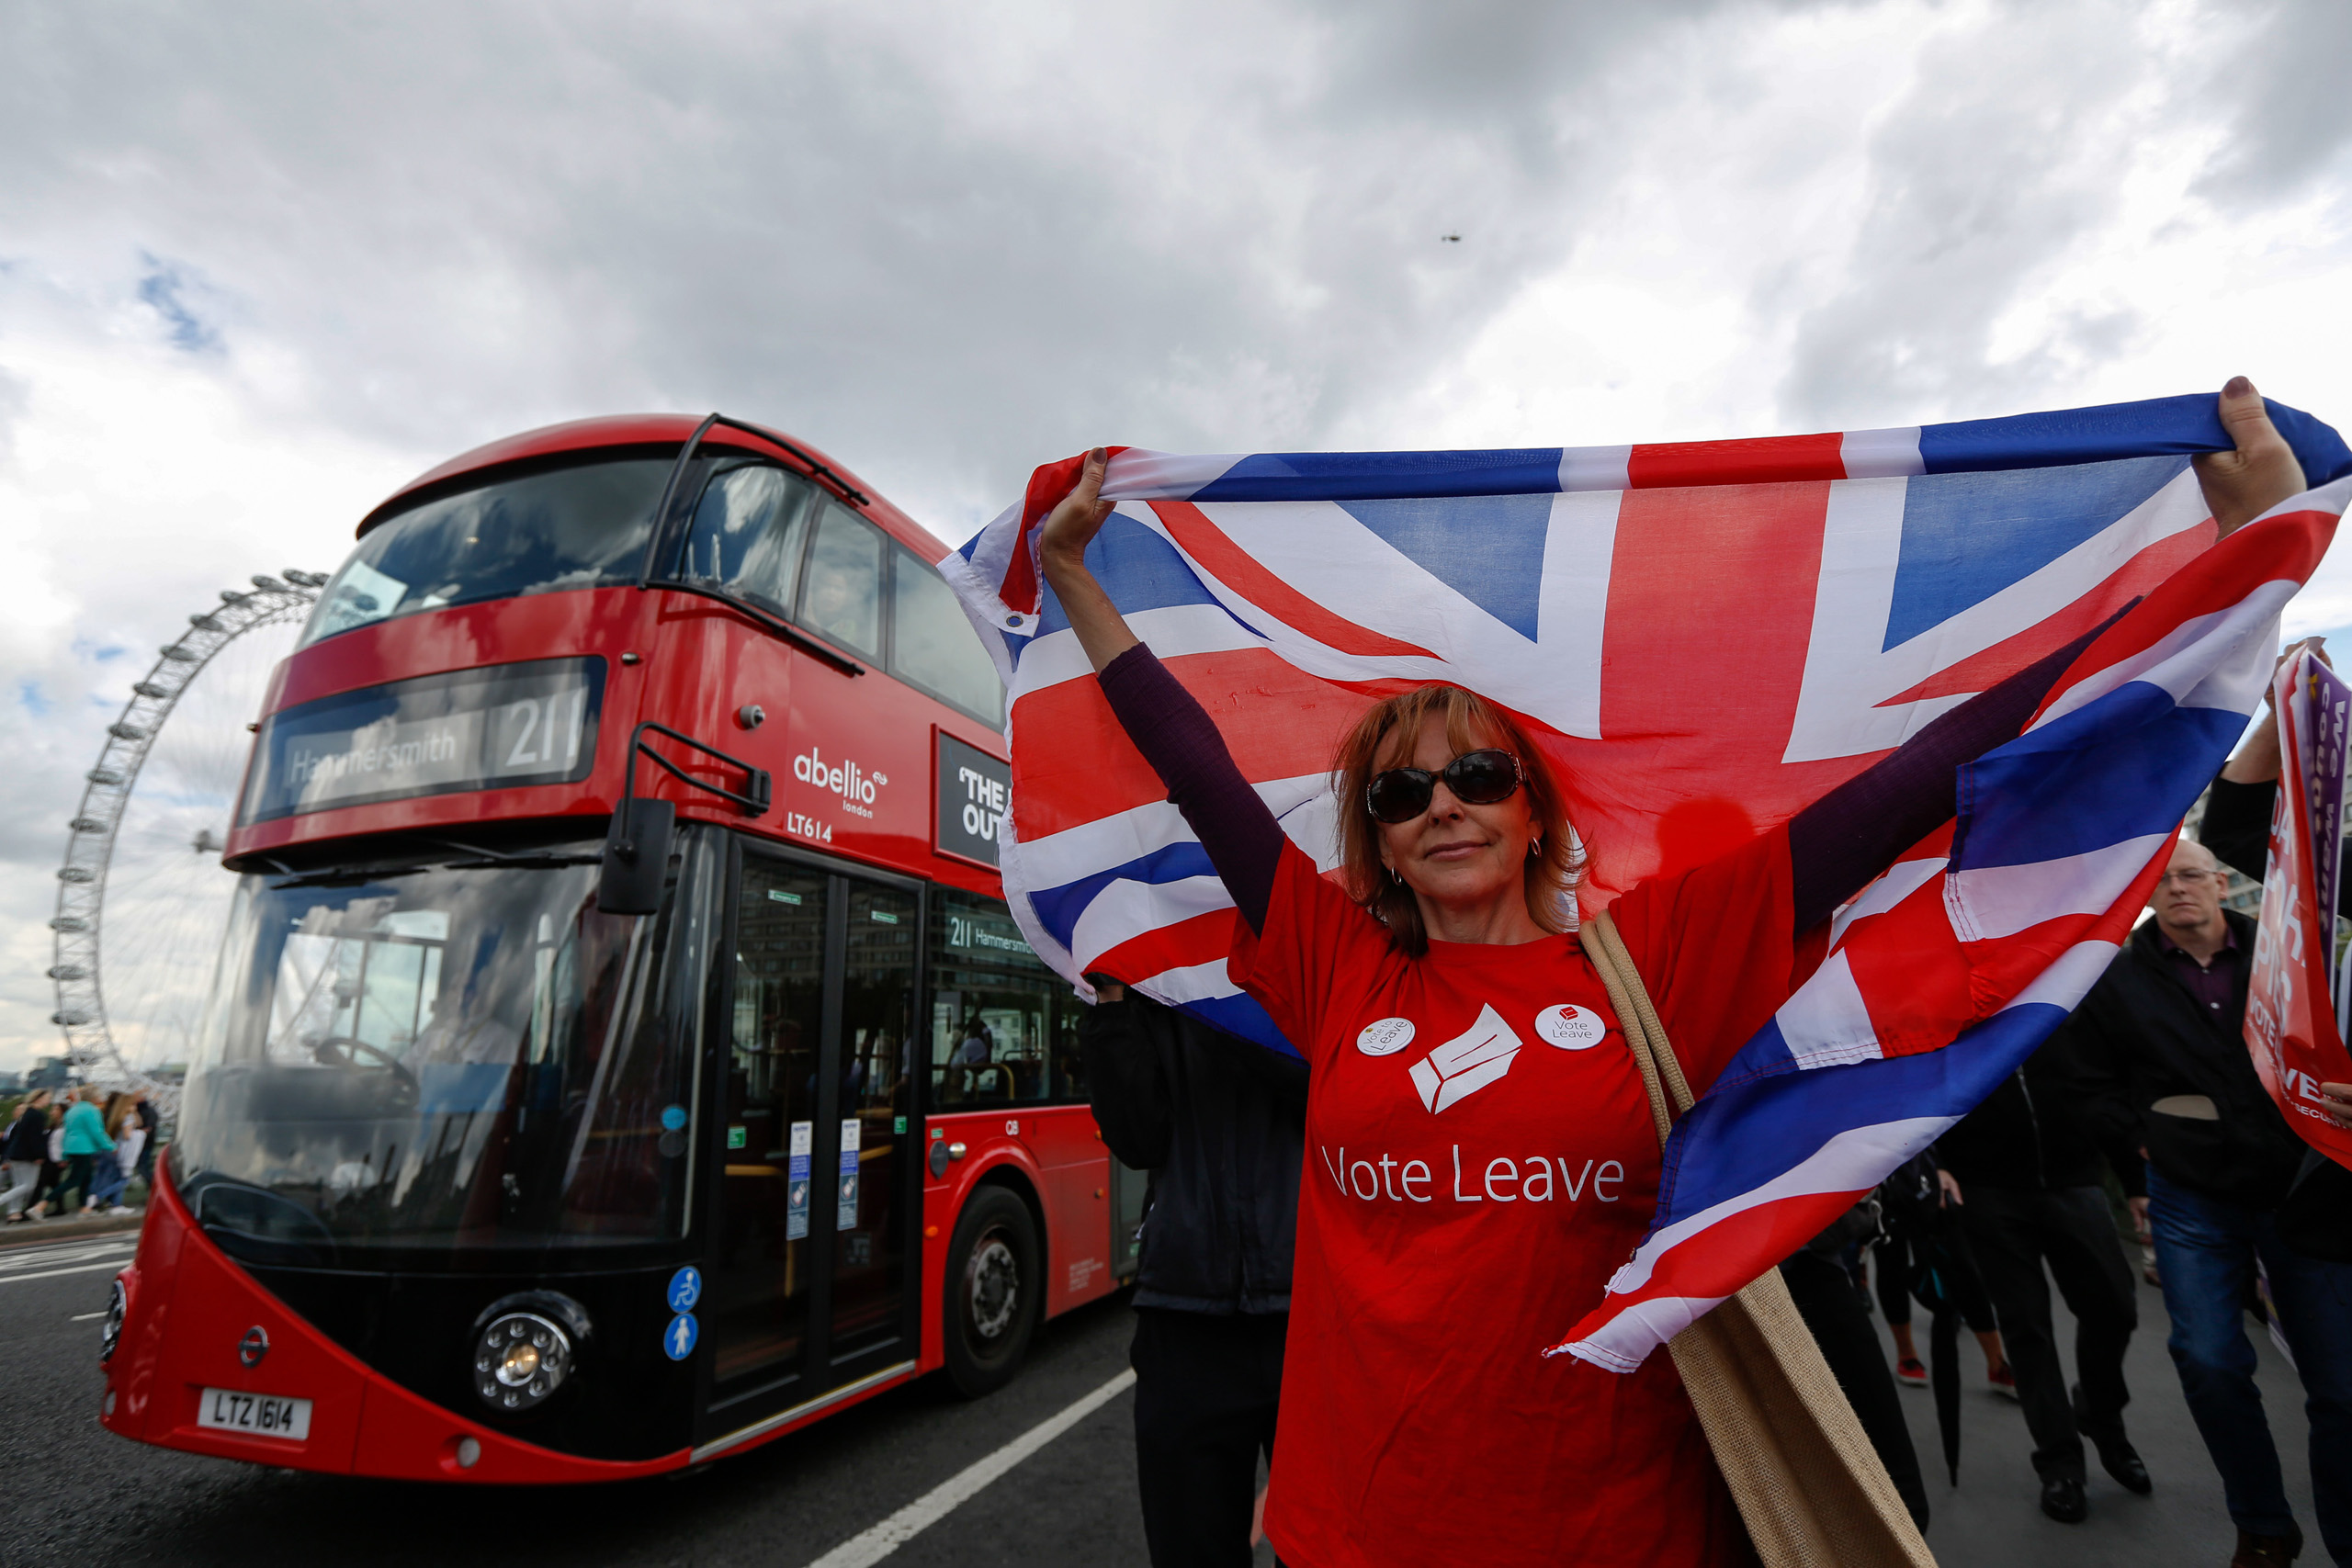 A campaigner wearing a Vote Leave T-shirt and holding a British Union Flag, also known as a Union Jack, stands on a Westminster Bridge near the Houses of Parliament in London on  June 15, 2016